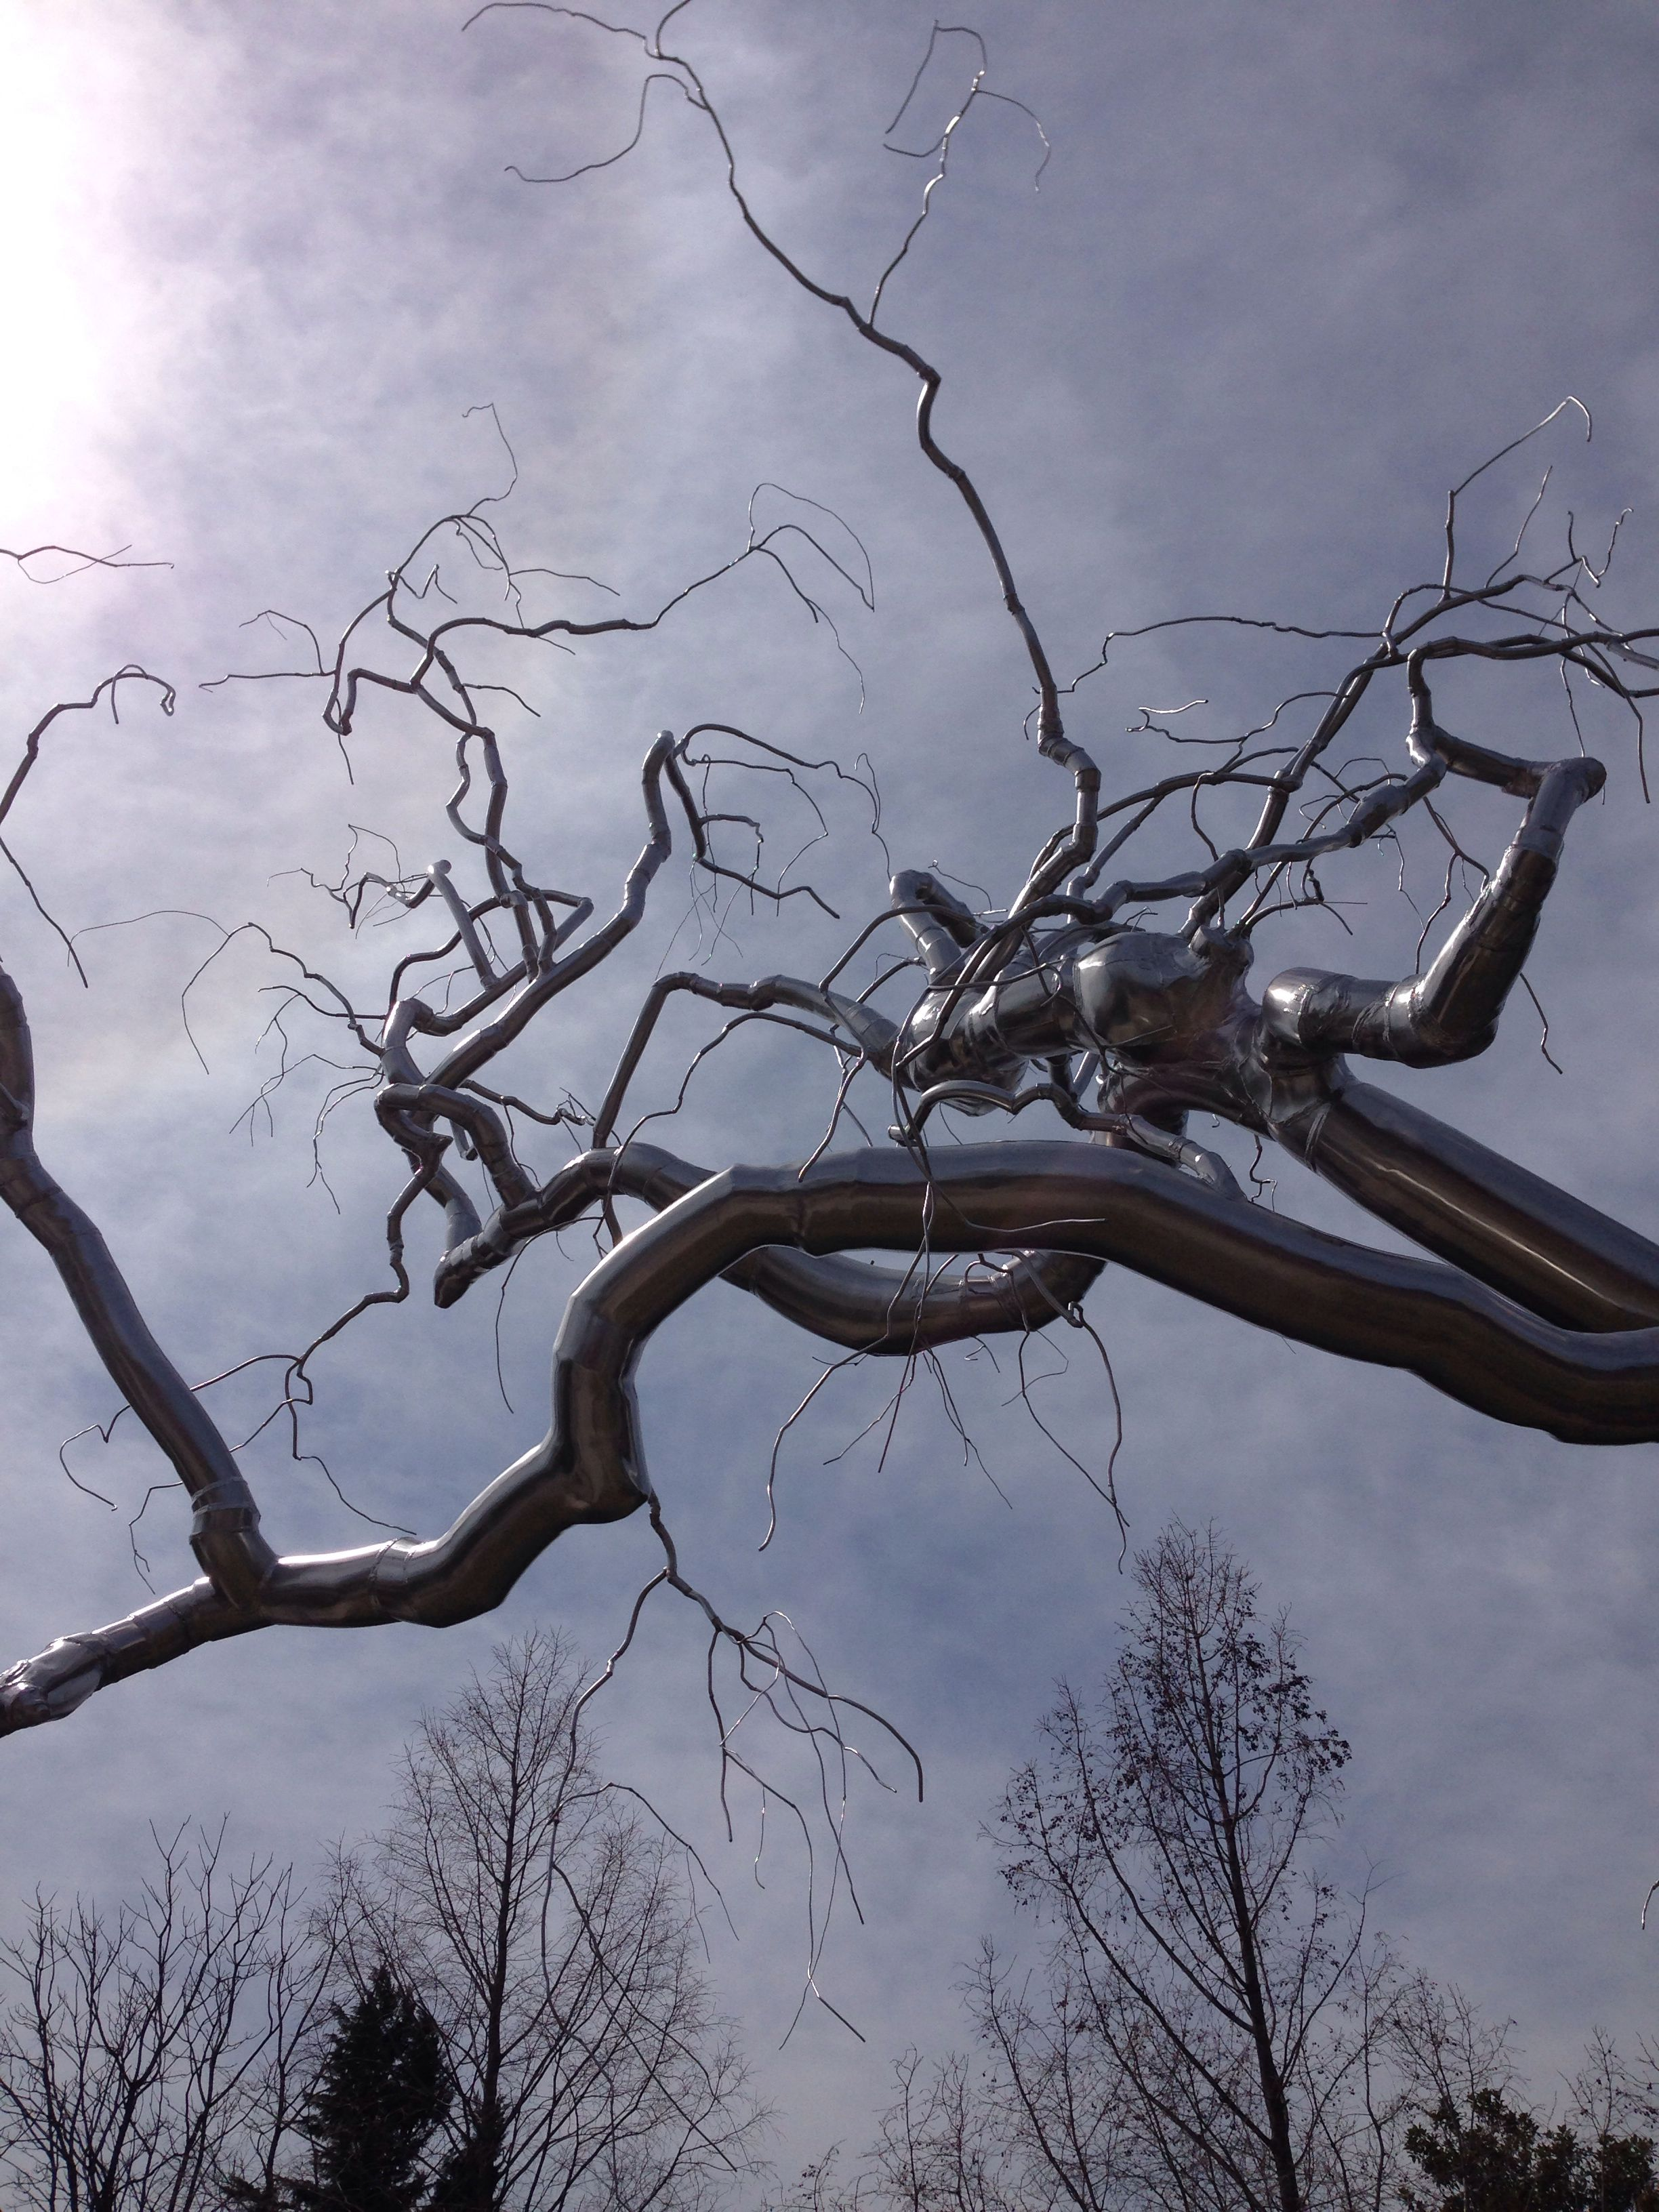 Stainless steel tree by Roxy Paine for the Sculpture Garden of the National Gallery of Art.